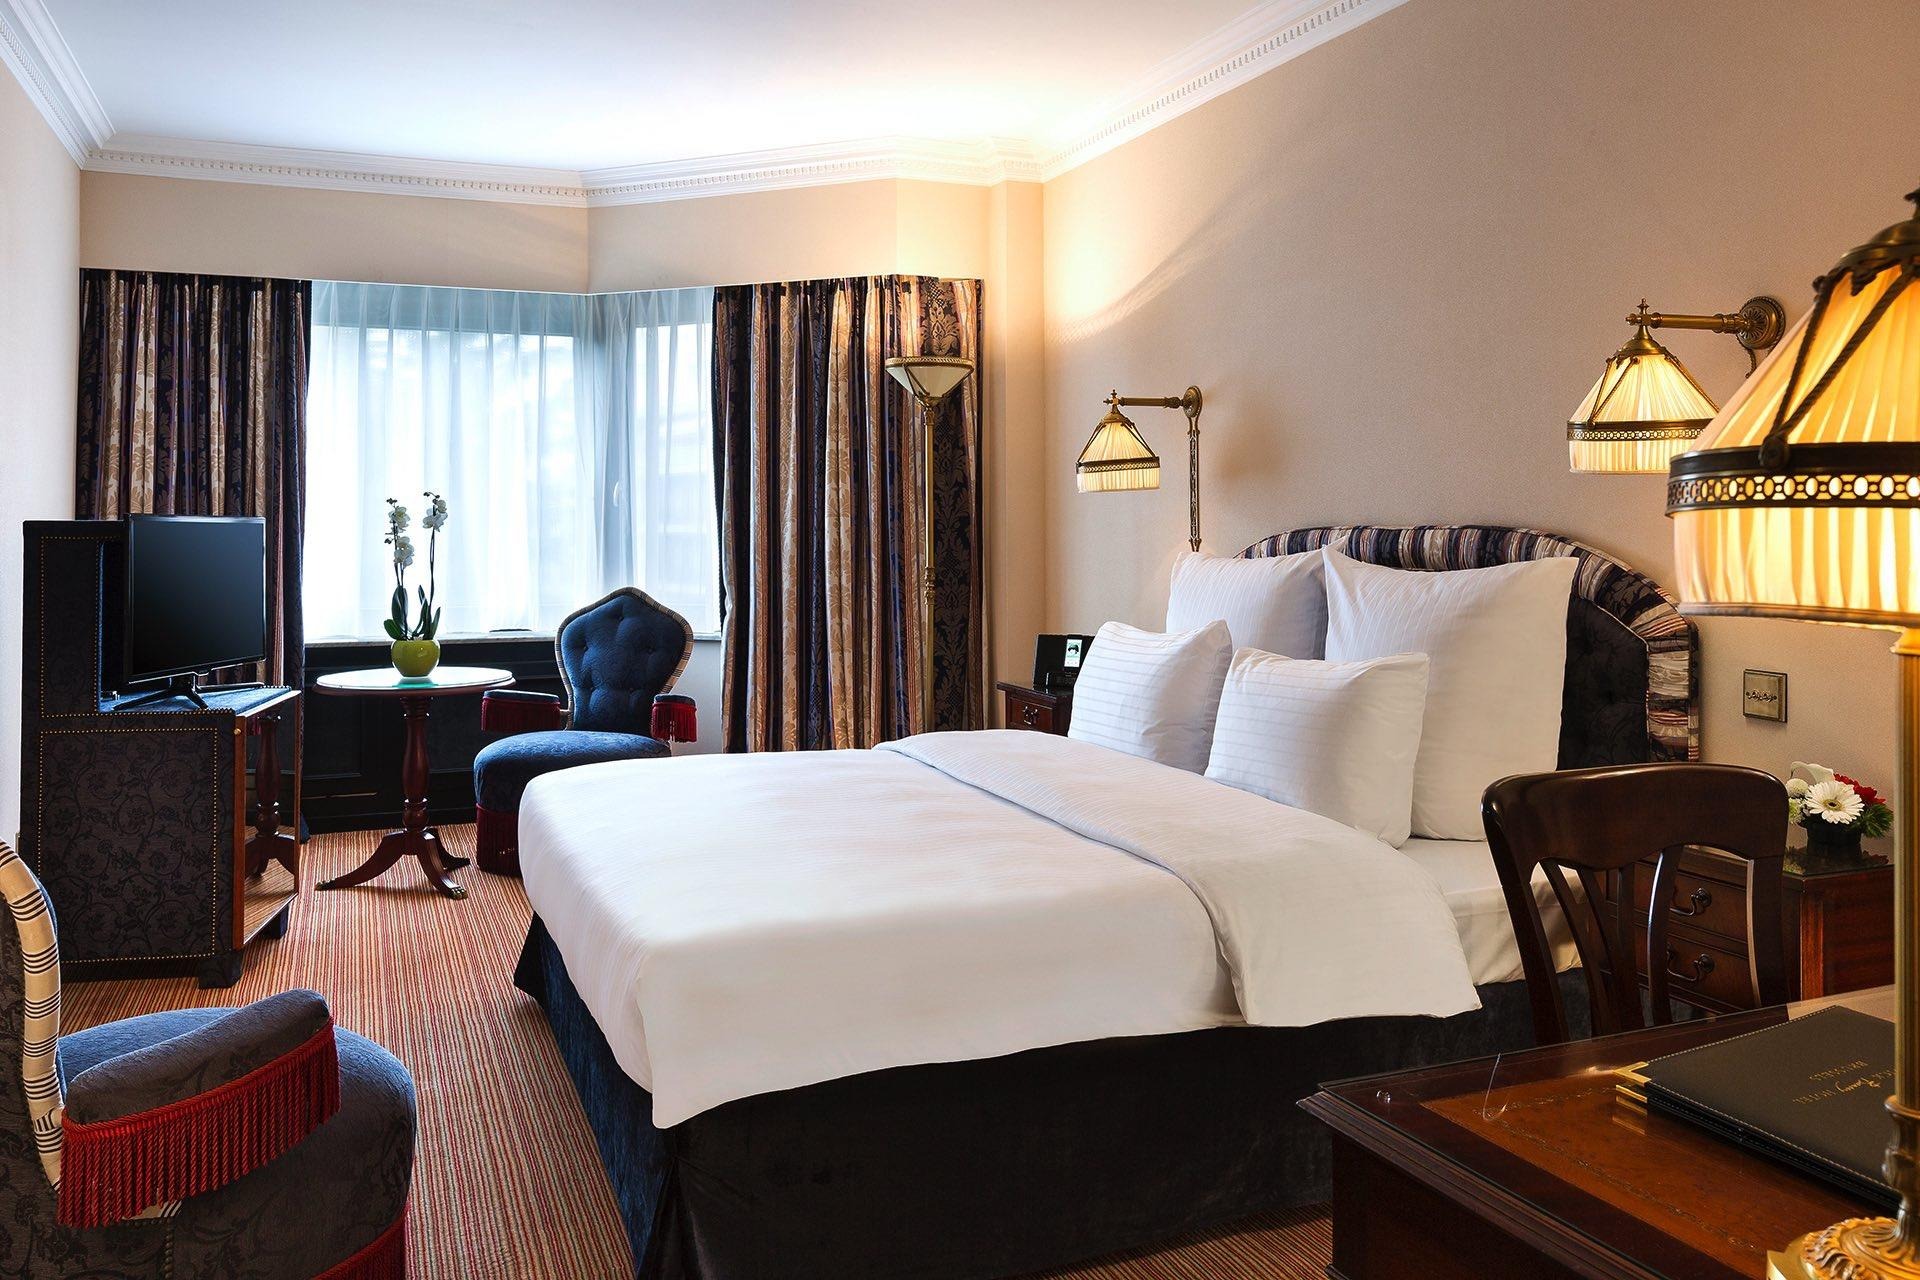 Premium Room at Hotel Barsey by Warwick